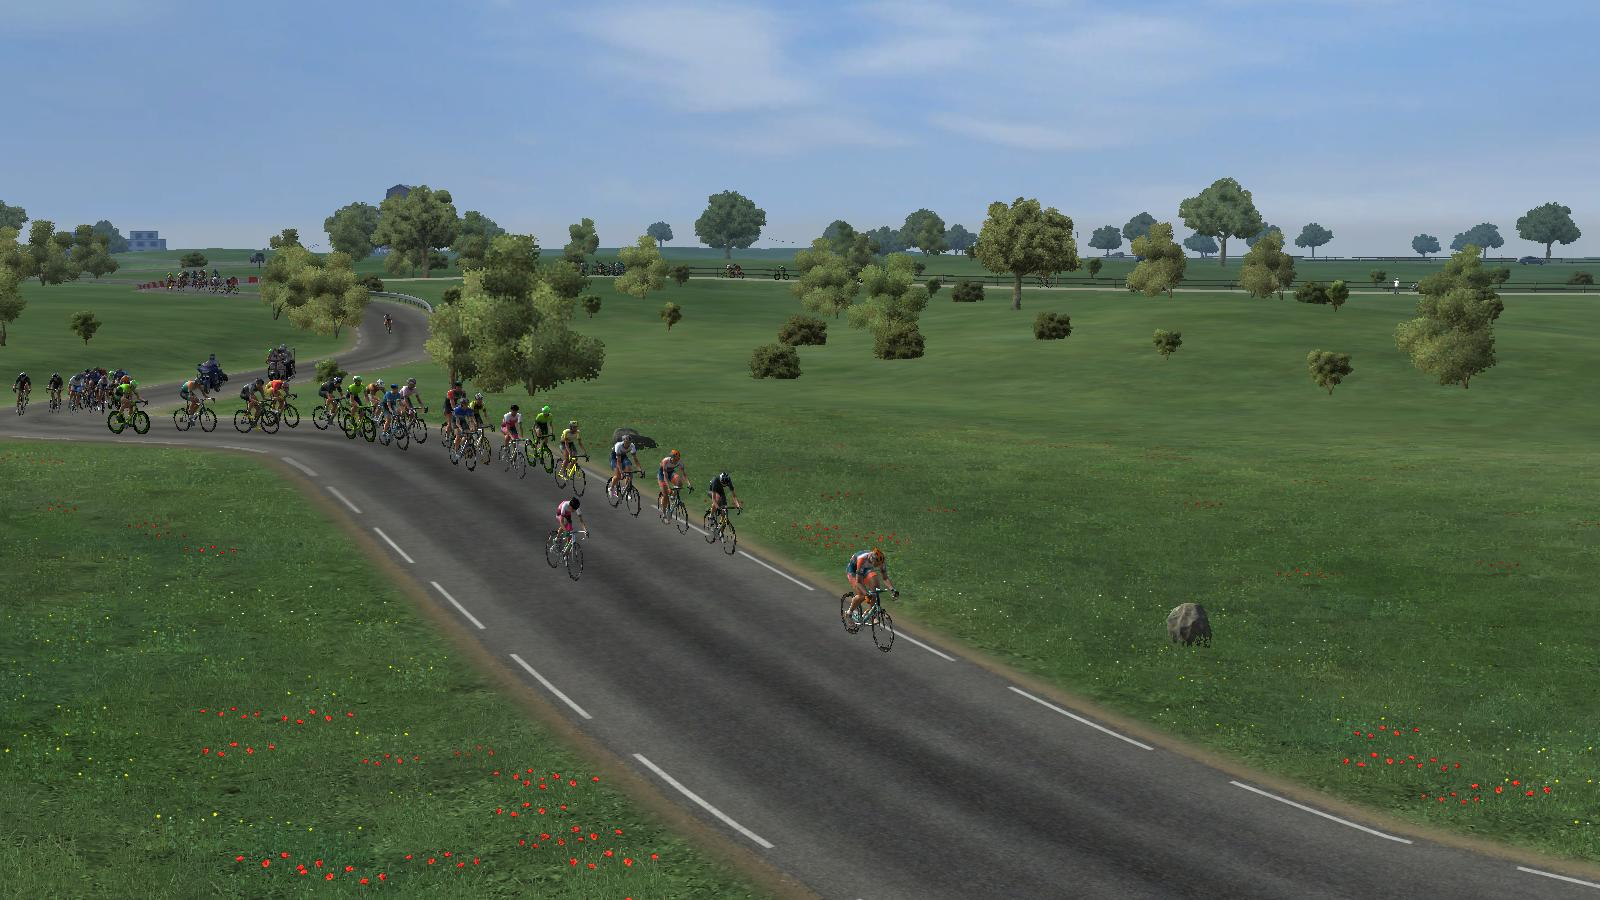 pcmdaily.com/images/mg/2019/Races/PTHC/Rheden/31.jpg